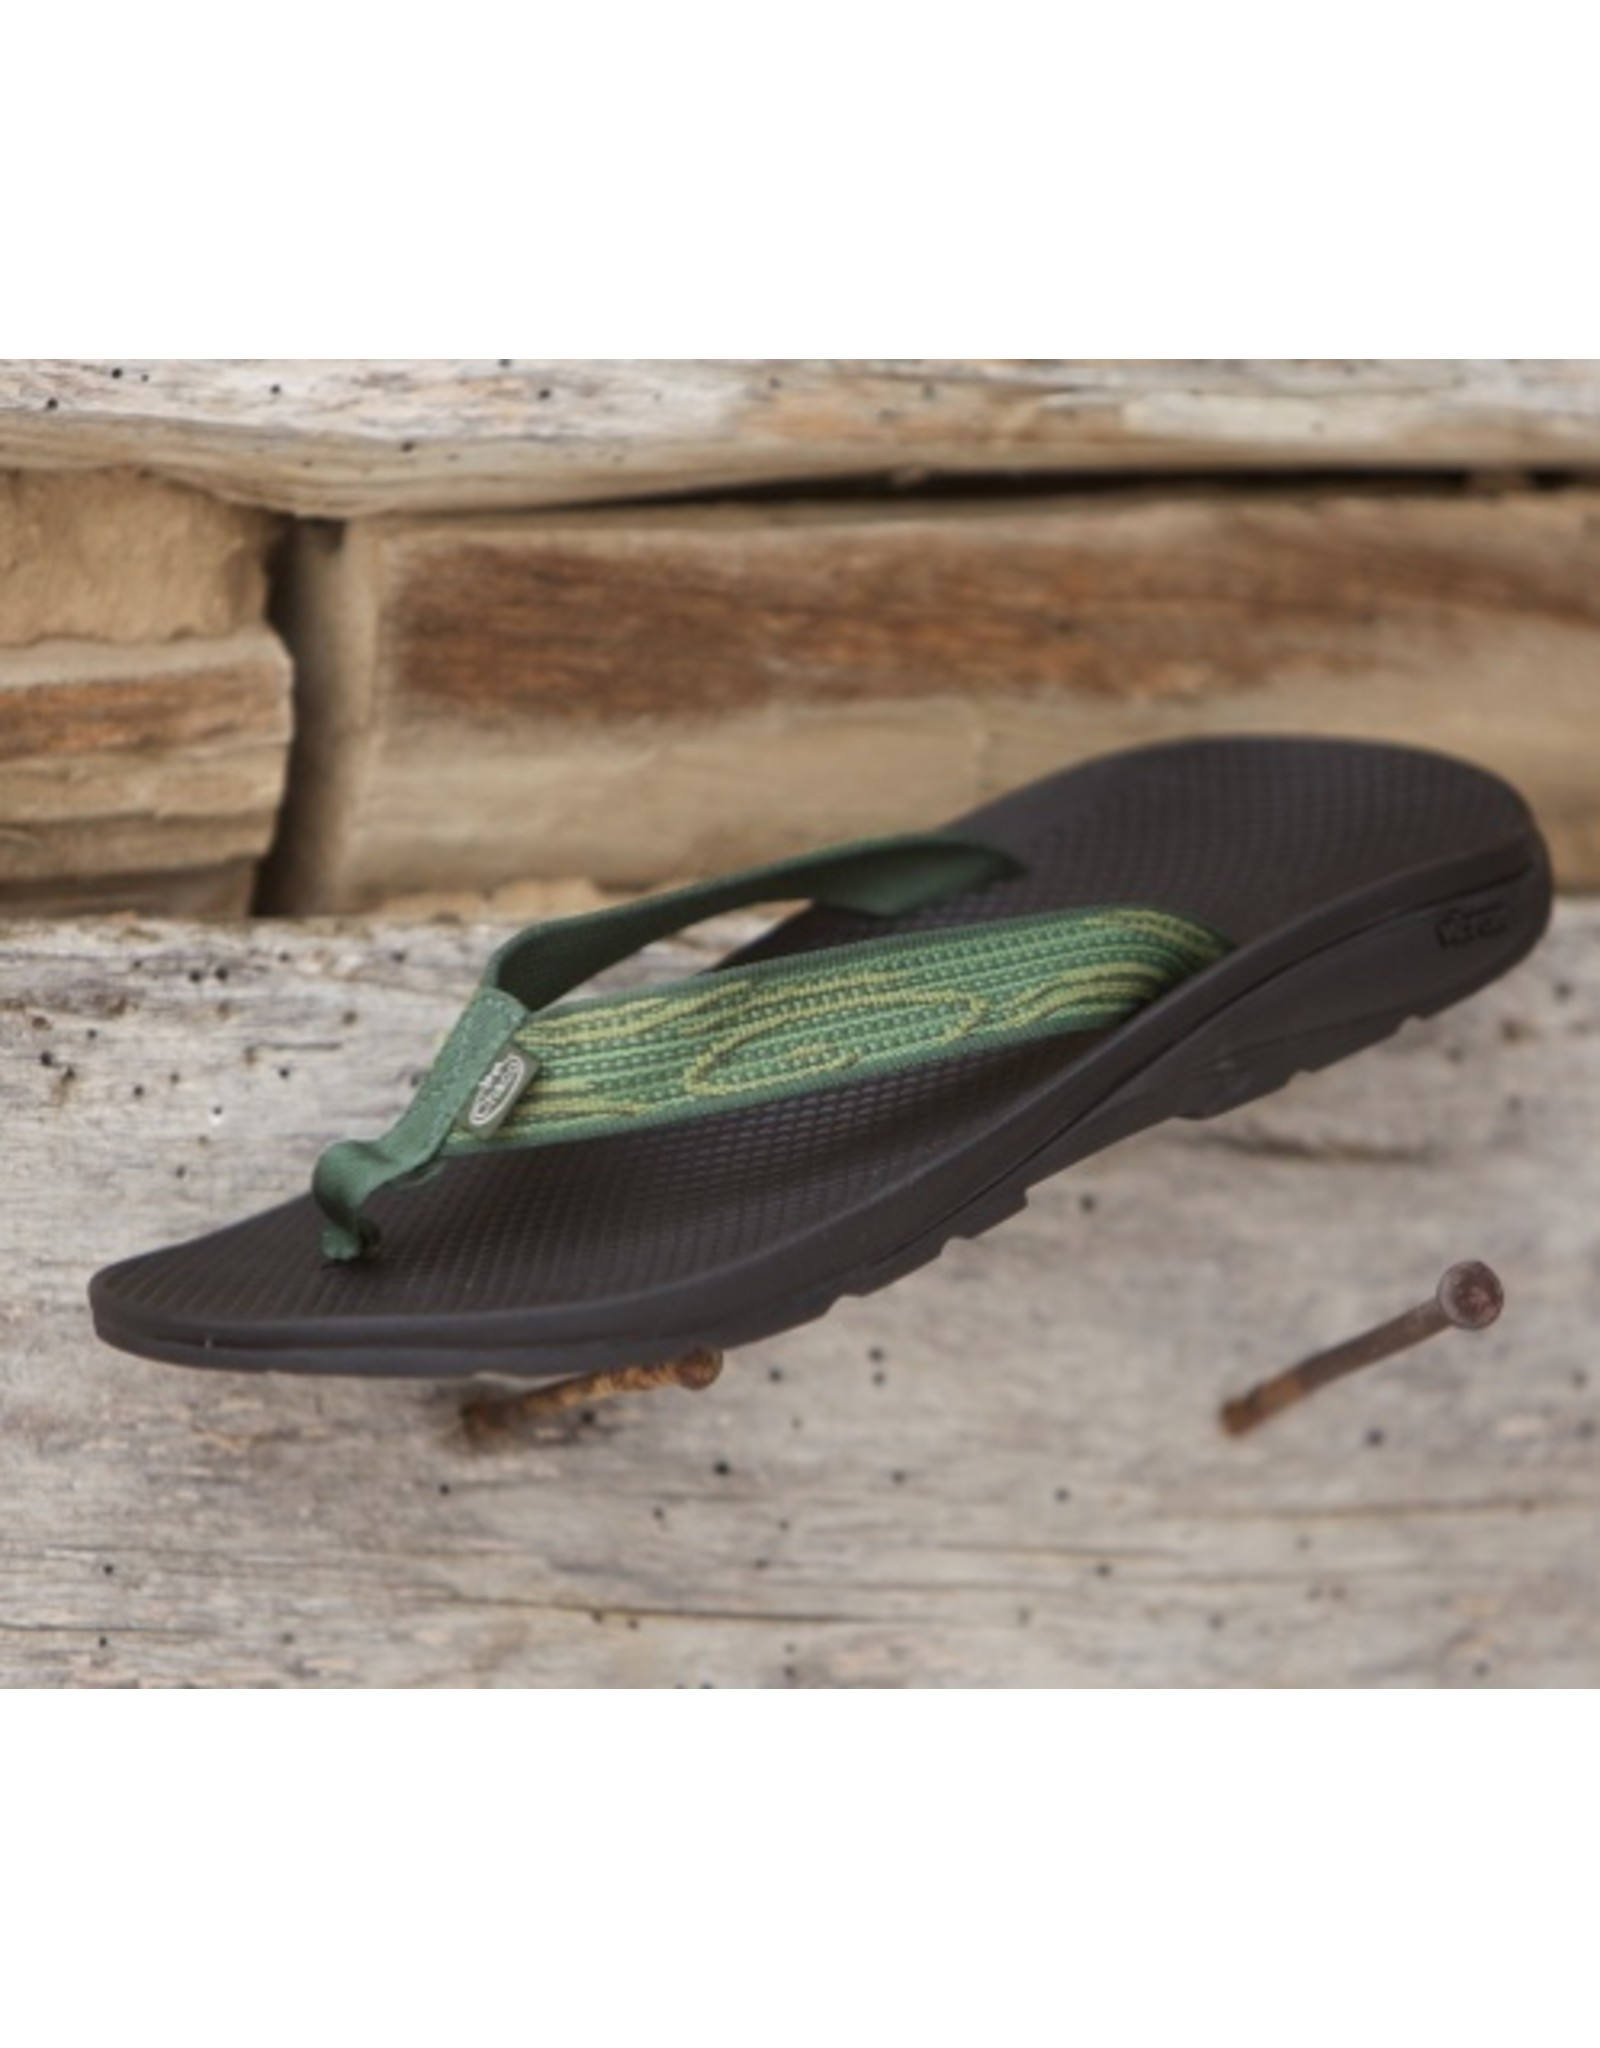 Fishpond Fishpond Chaco Flips